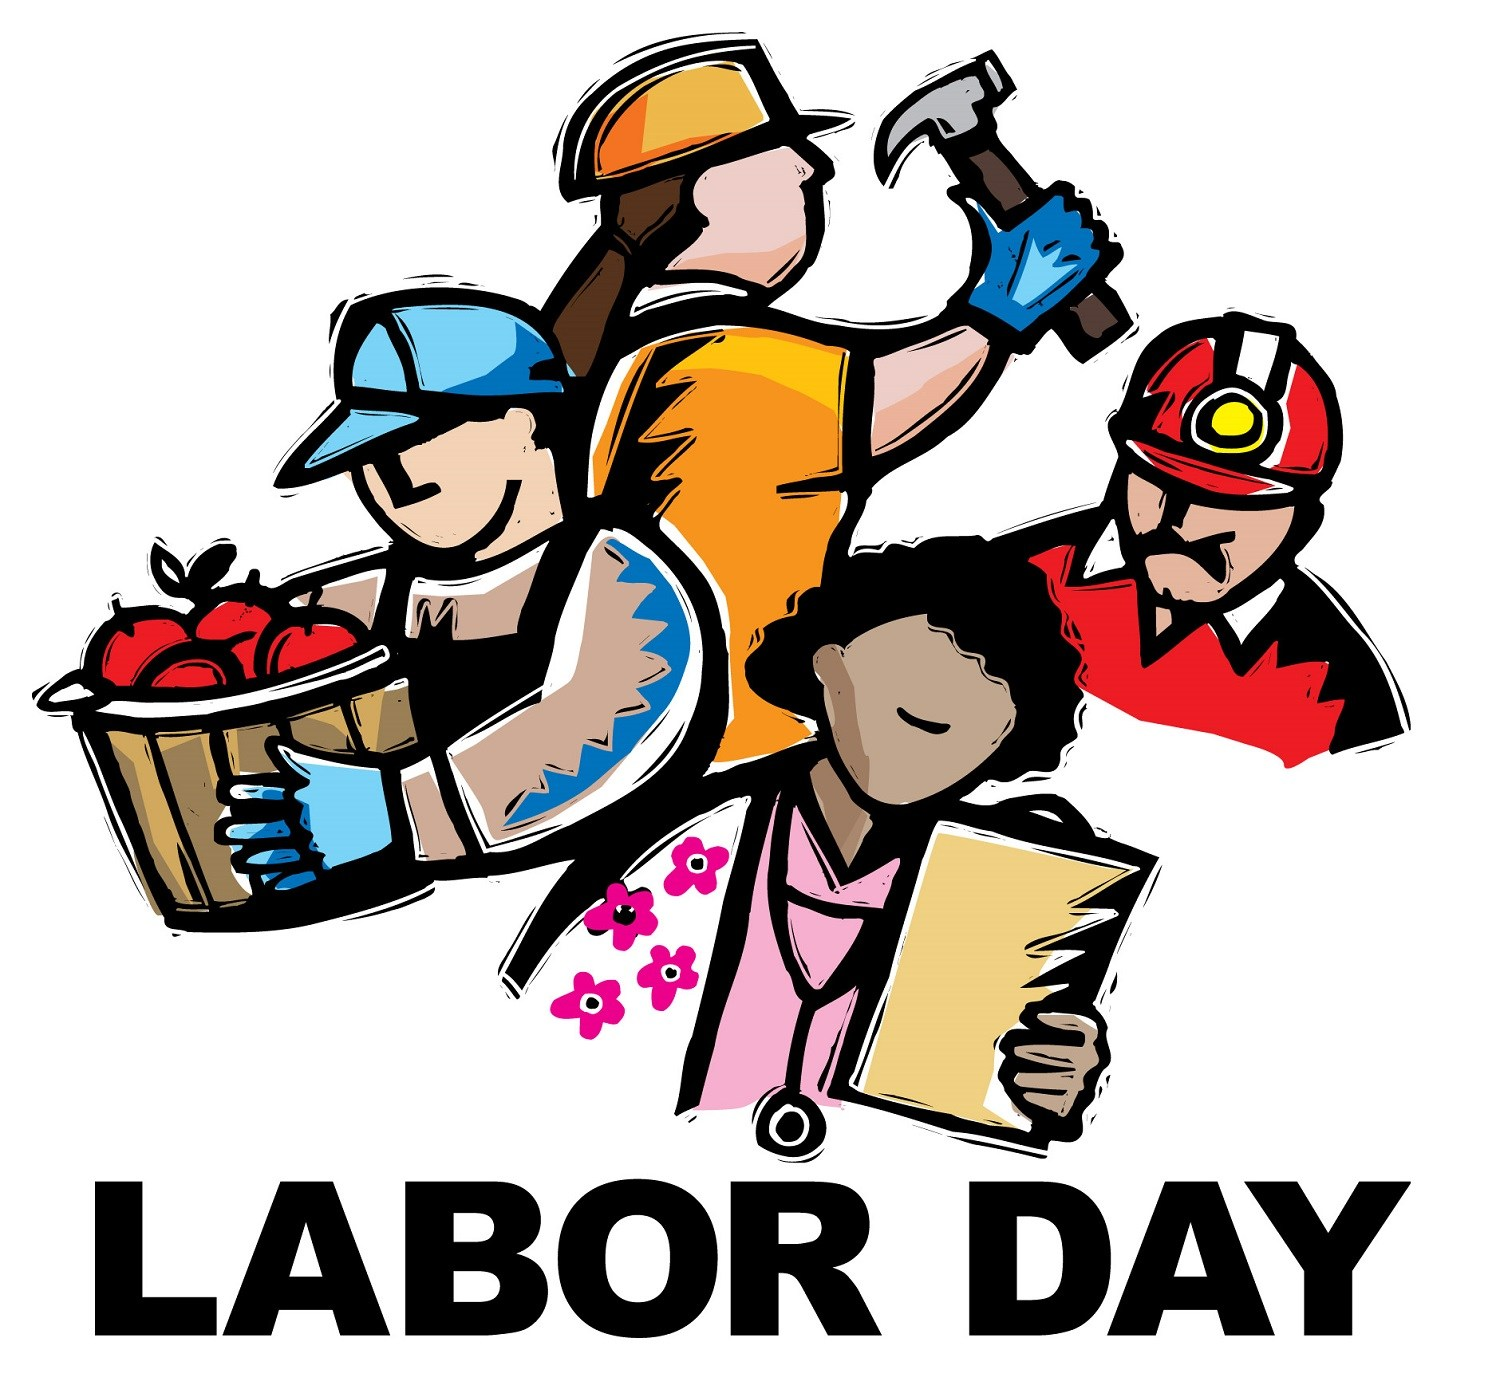 1500x1397 Labourlabor Day Games Amp Activities Crafts, Clipart, Sketch